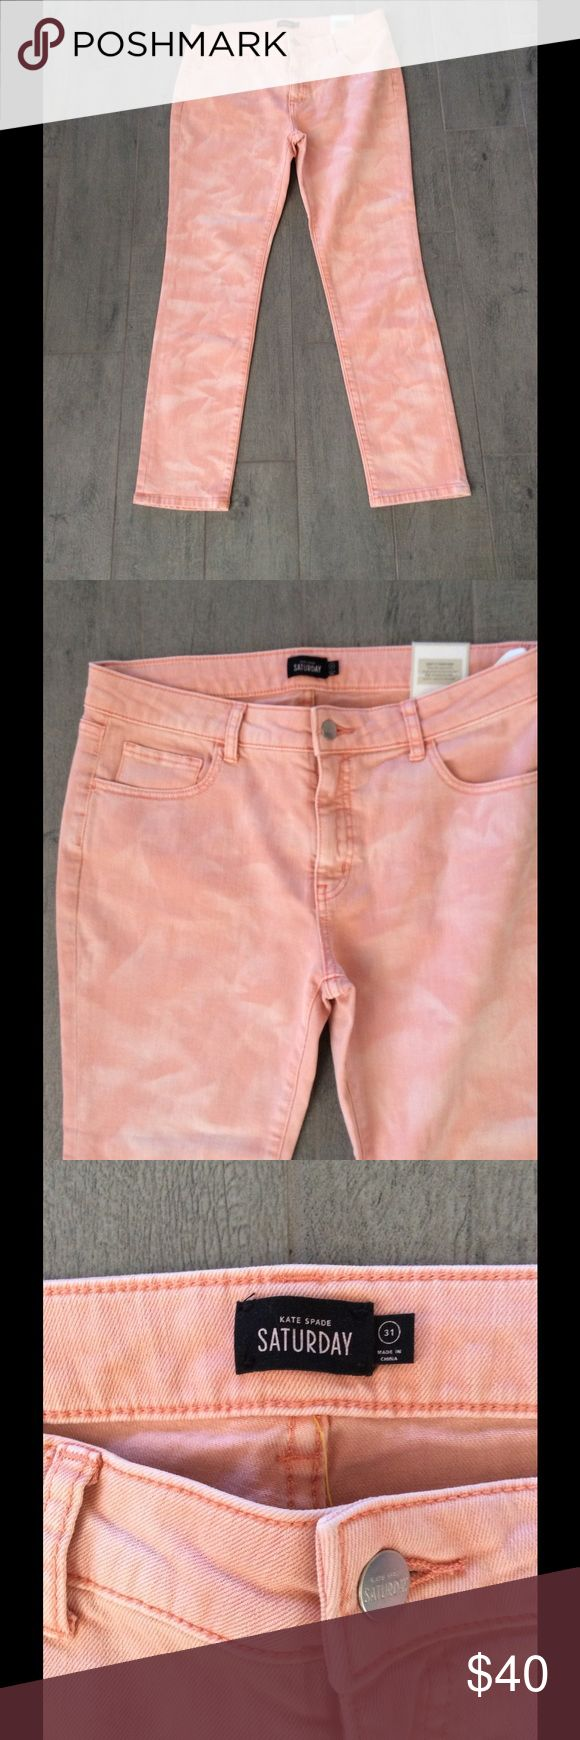 Kate Spade Saturday NWT Skinny Jeans, SZ 31 Kate spade Saturday new with tags peach printed skinny jeans with traditional five pocket design button at the waist and zipper a great Pair of Jeans headed into spring and summer kate spade Jeans Straight Leg